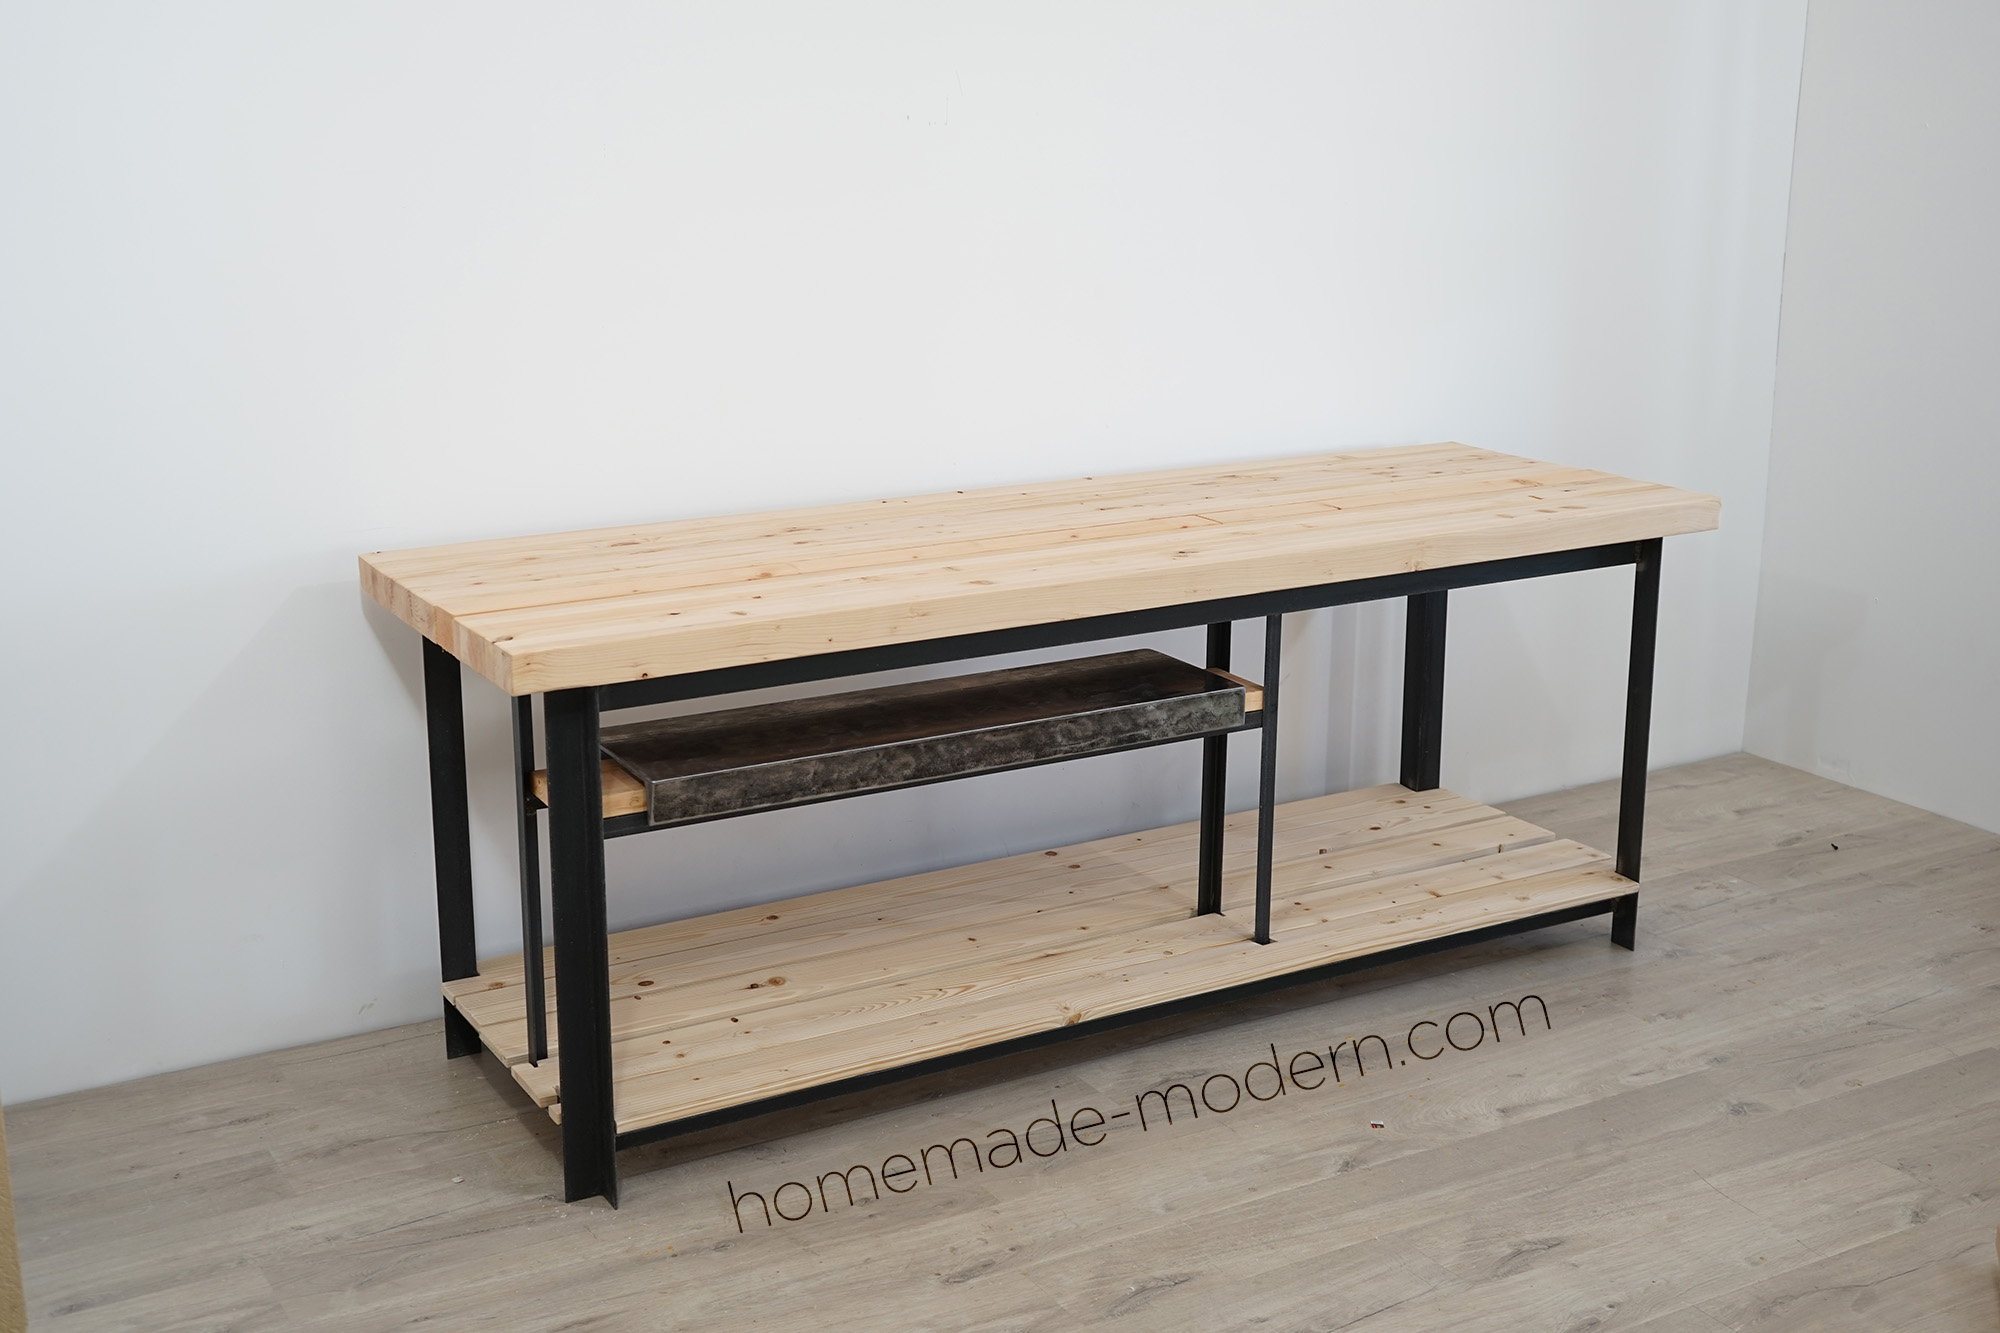 Ben Uyeda of HomeMade Modern designed and built this split top workbench with a removable steel top. For more information go to HomeMade-Modern.com